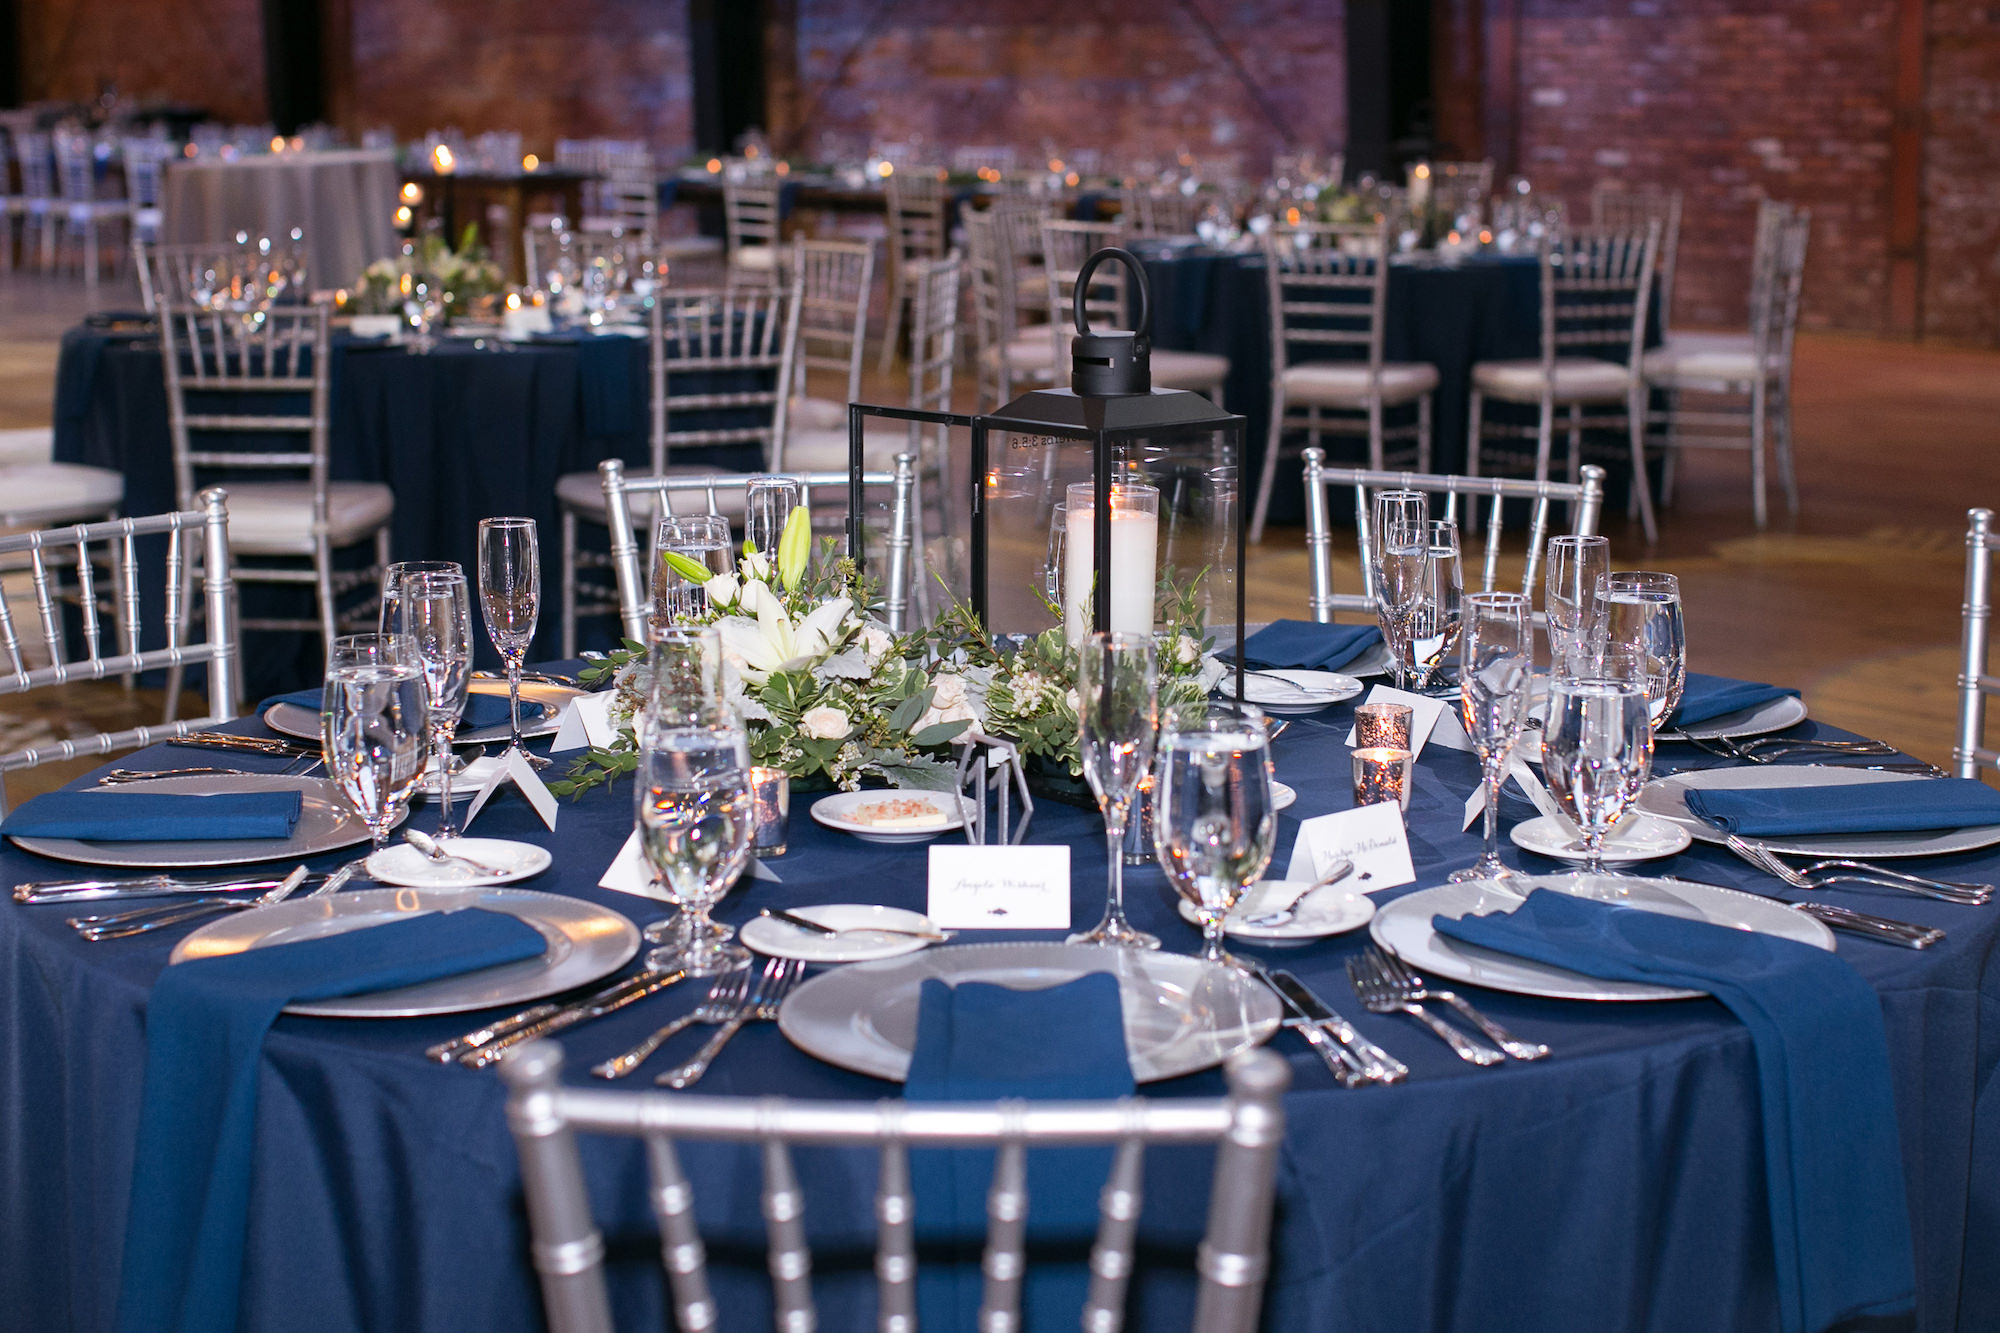 Modern Elegant Wedding Reception Decor, Round Table with Navy Blue Linens, Silver Chiavari Chairs and Chargers, Black Lantern with White Flowers and Greenery Centerpiece   Tampa Bay Wedding Photographer Carrie Wildes Photography   Chair, Chargers and Table Rentals A Chair Affair   Industrial Historic Wedding Venue Armature Works   Wedding Planner Love Lee Lane